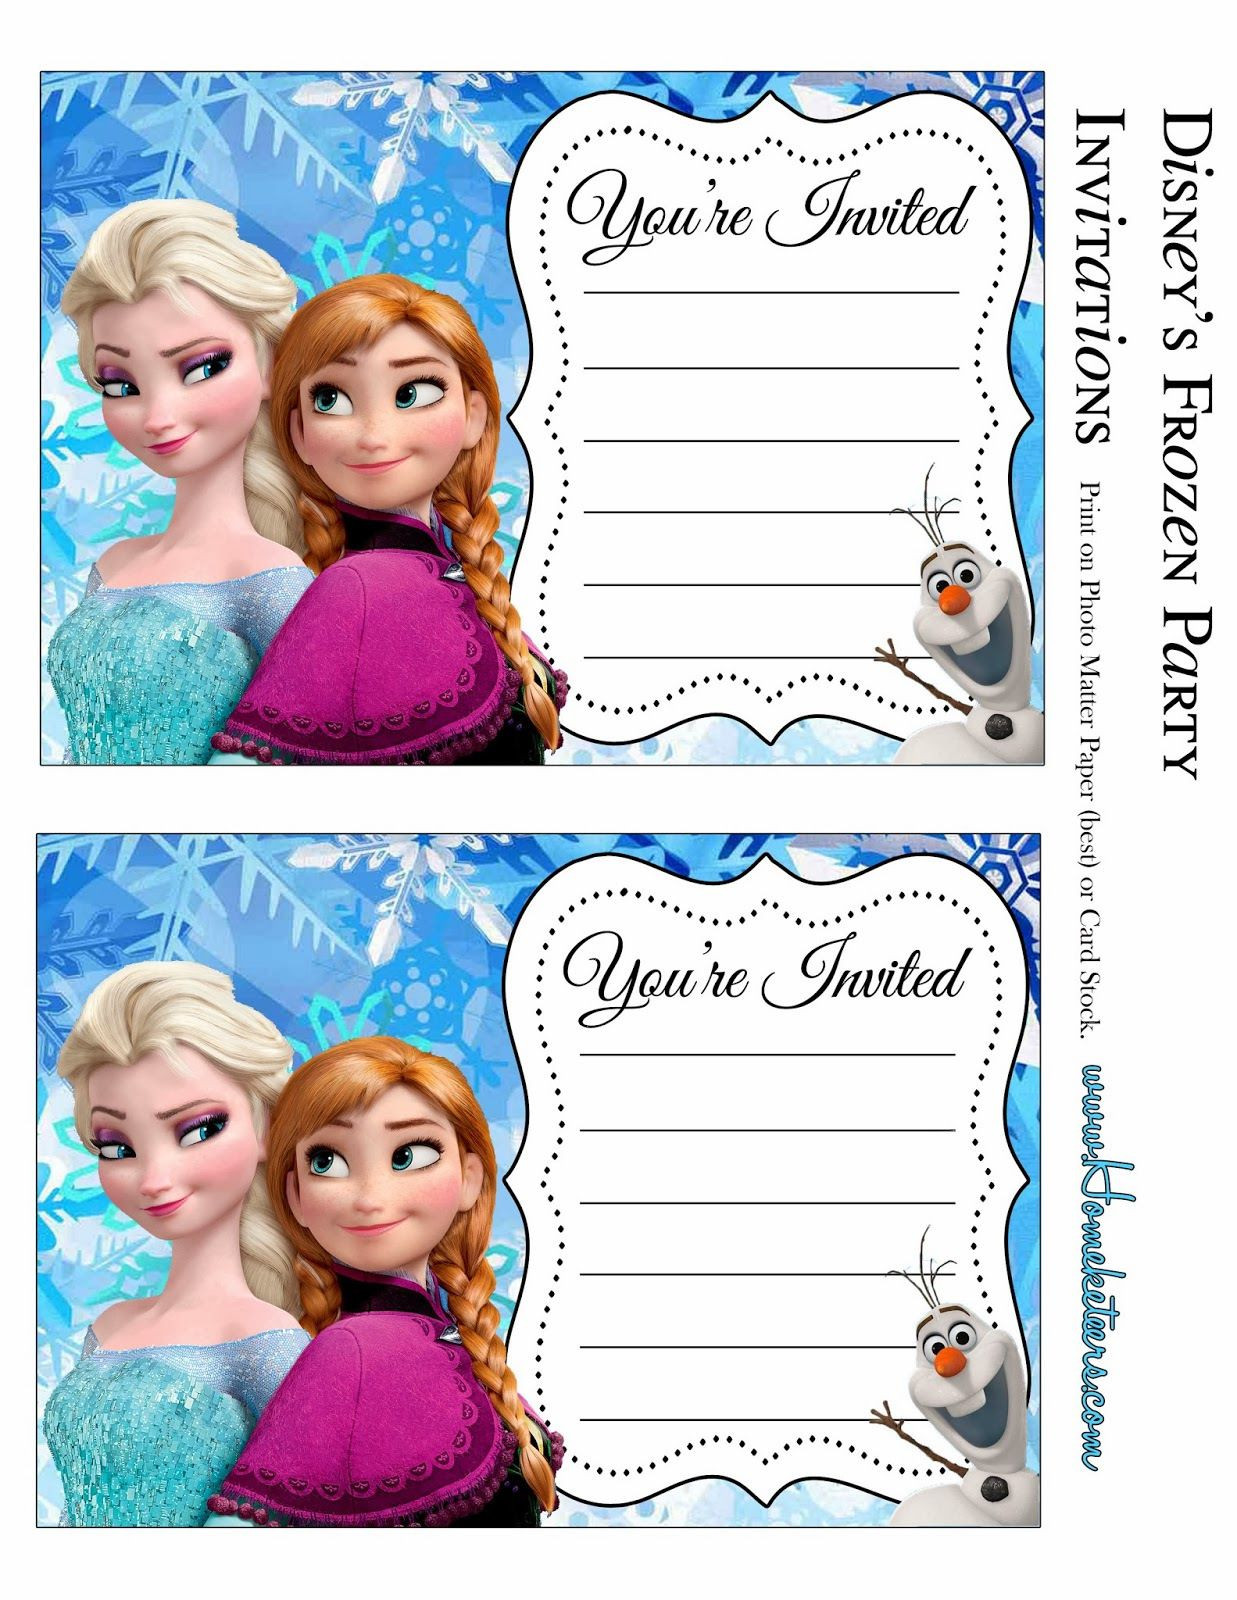 Frozen Invitations Printable Free Free Printables for the Disney Movie Frozen